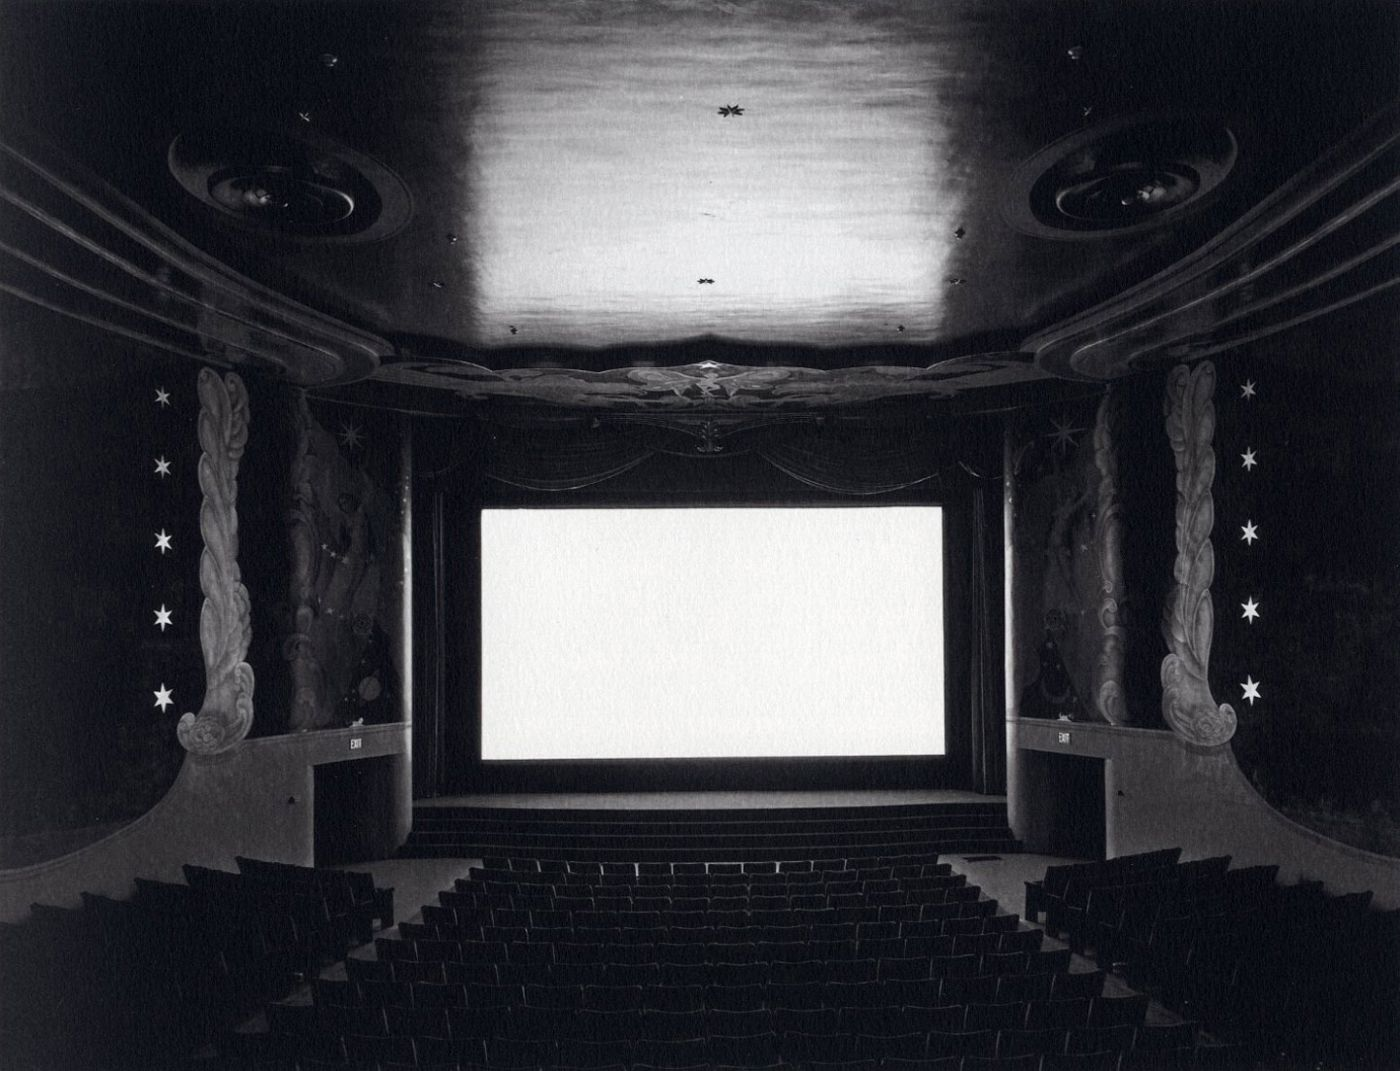 Hiroshi Sugimoto: Theaters [SIGNED in kanji with a calligraphy brush]